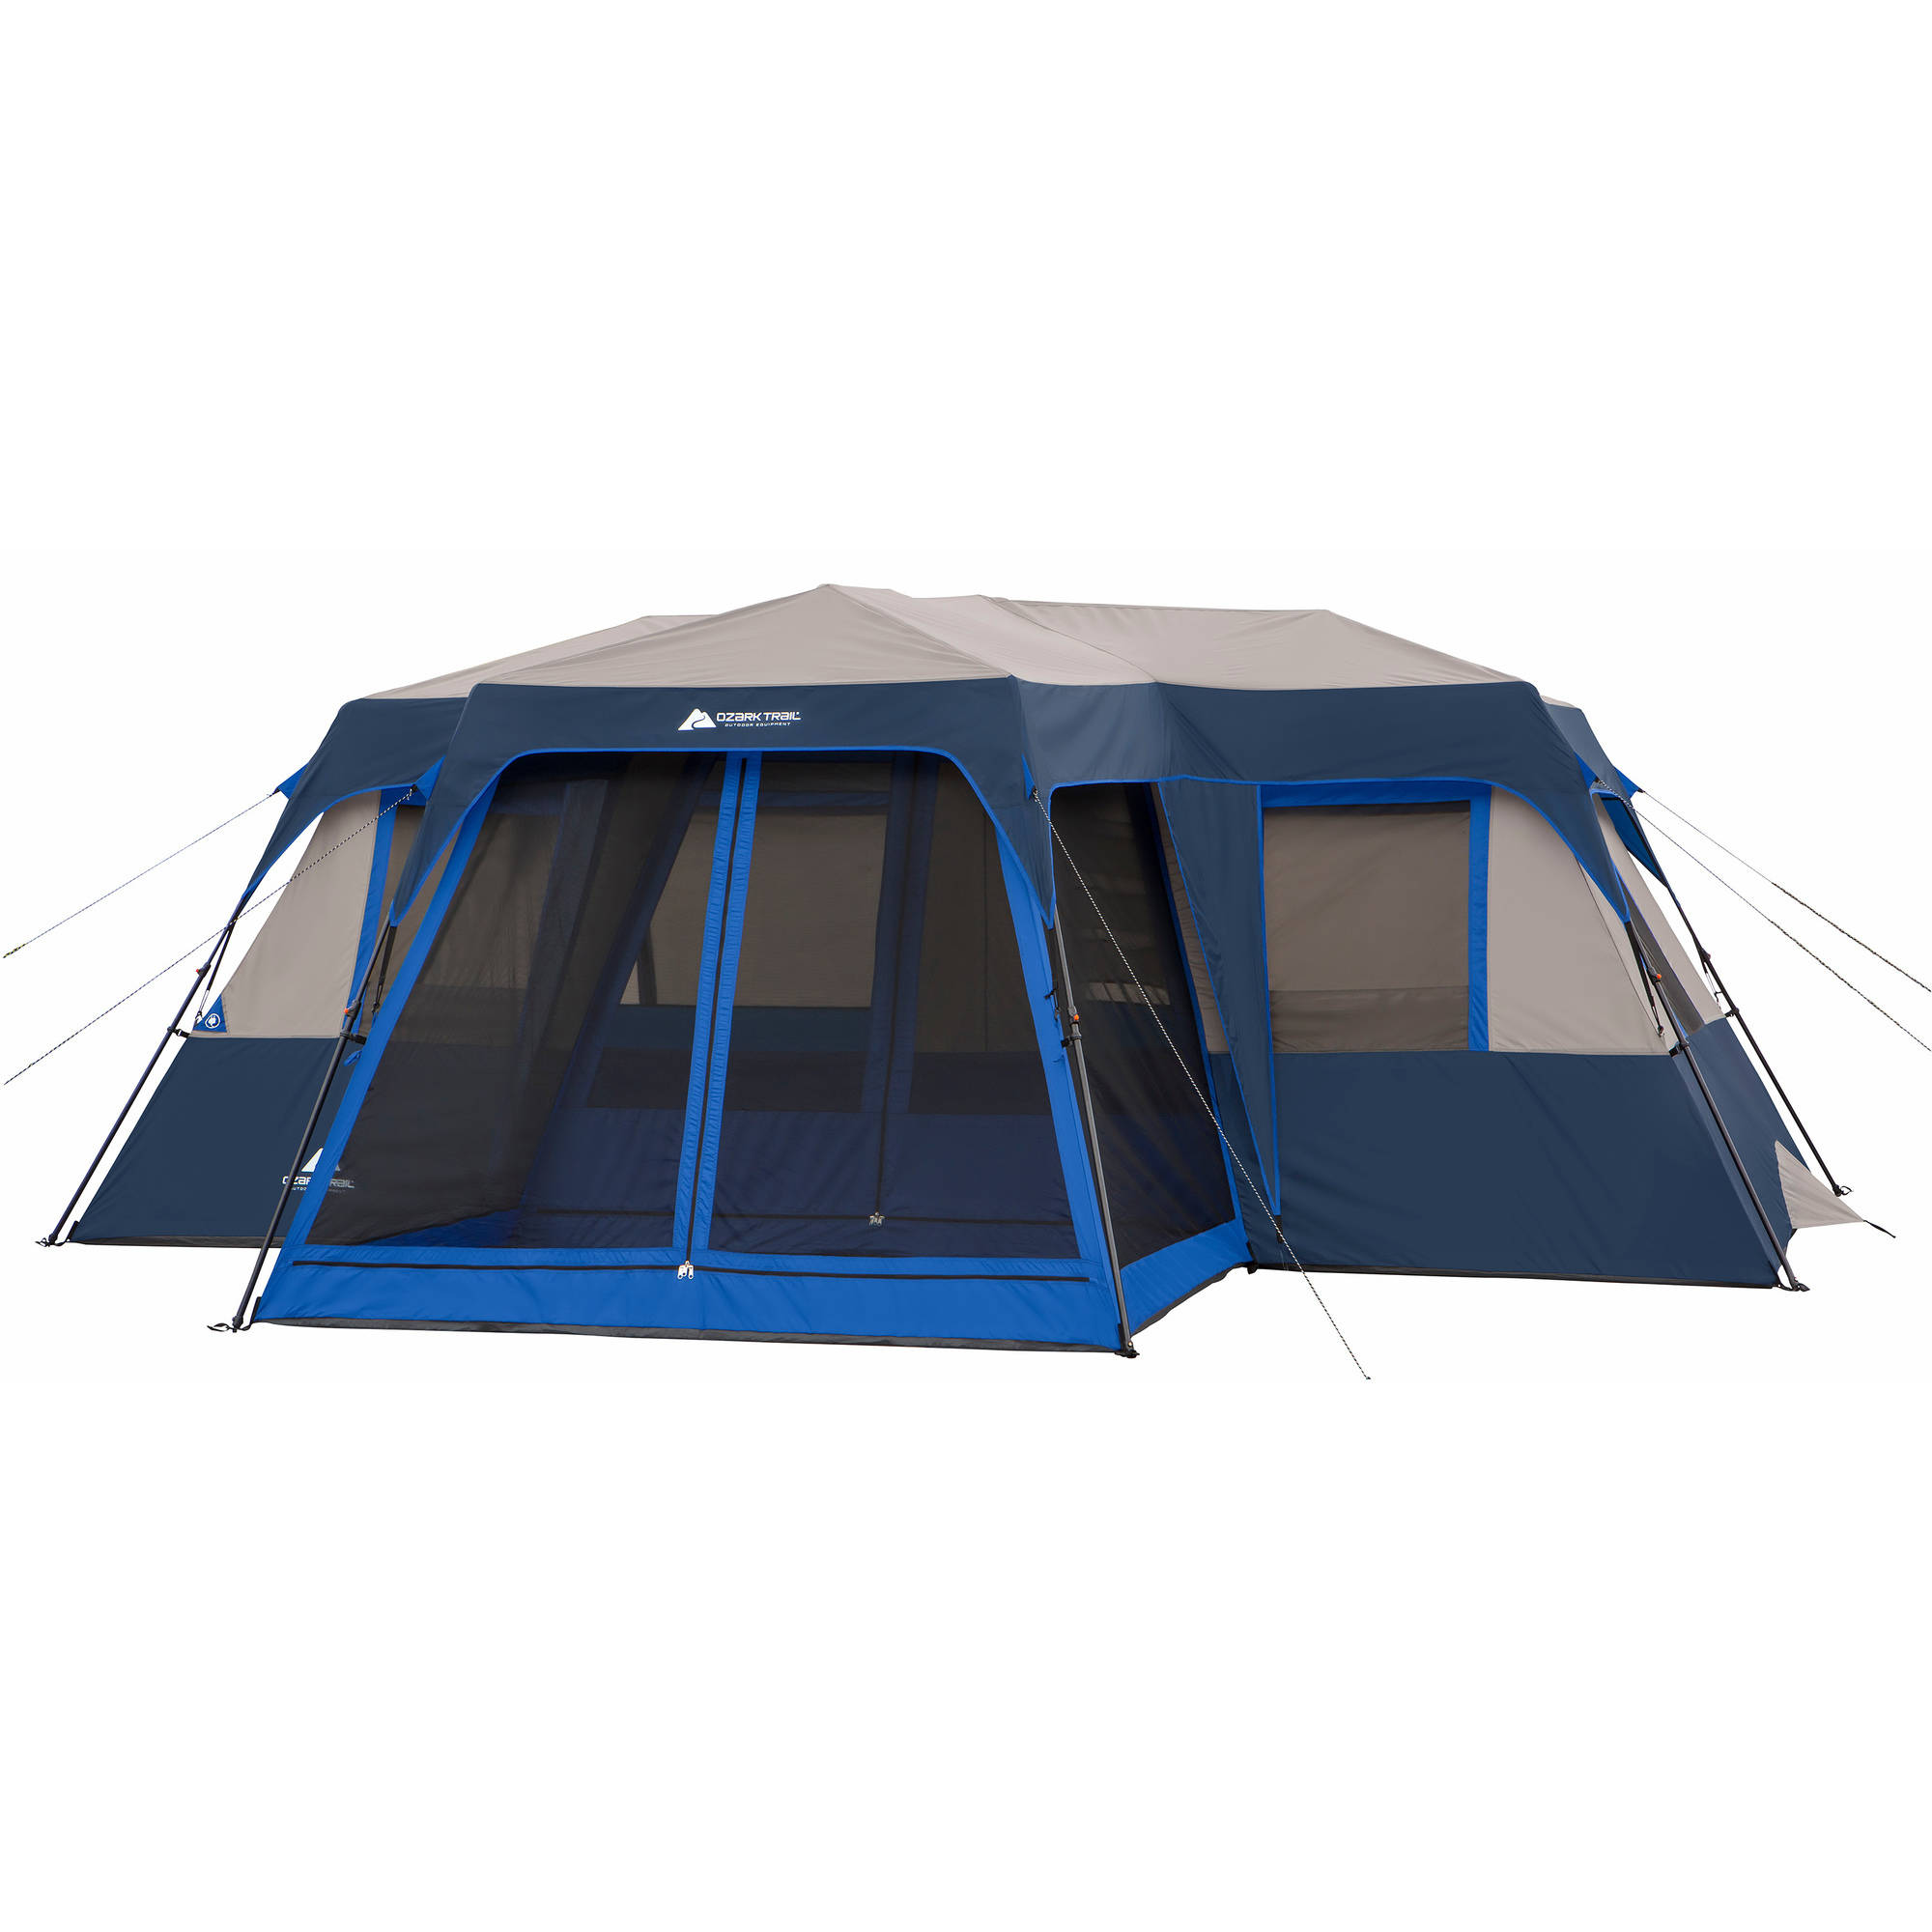 Ozark Trail 12 Person 2 Room Instant Cabin Tent with